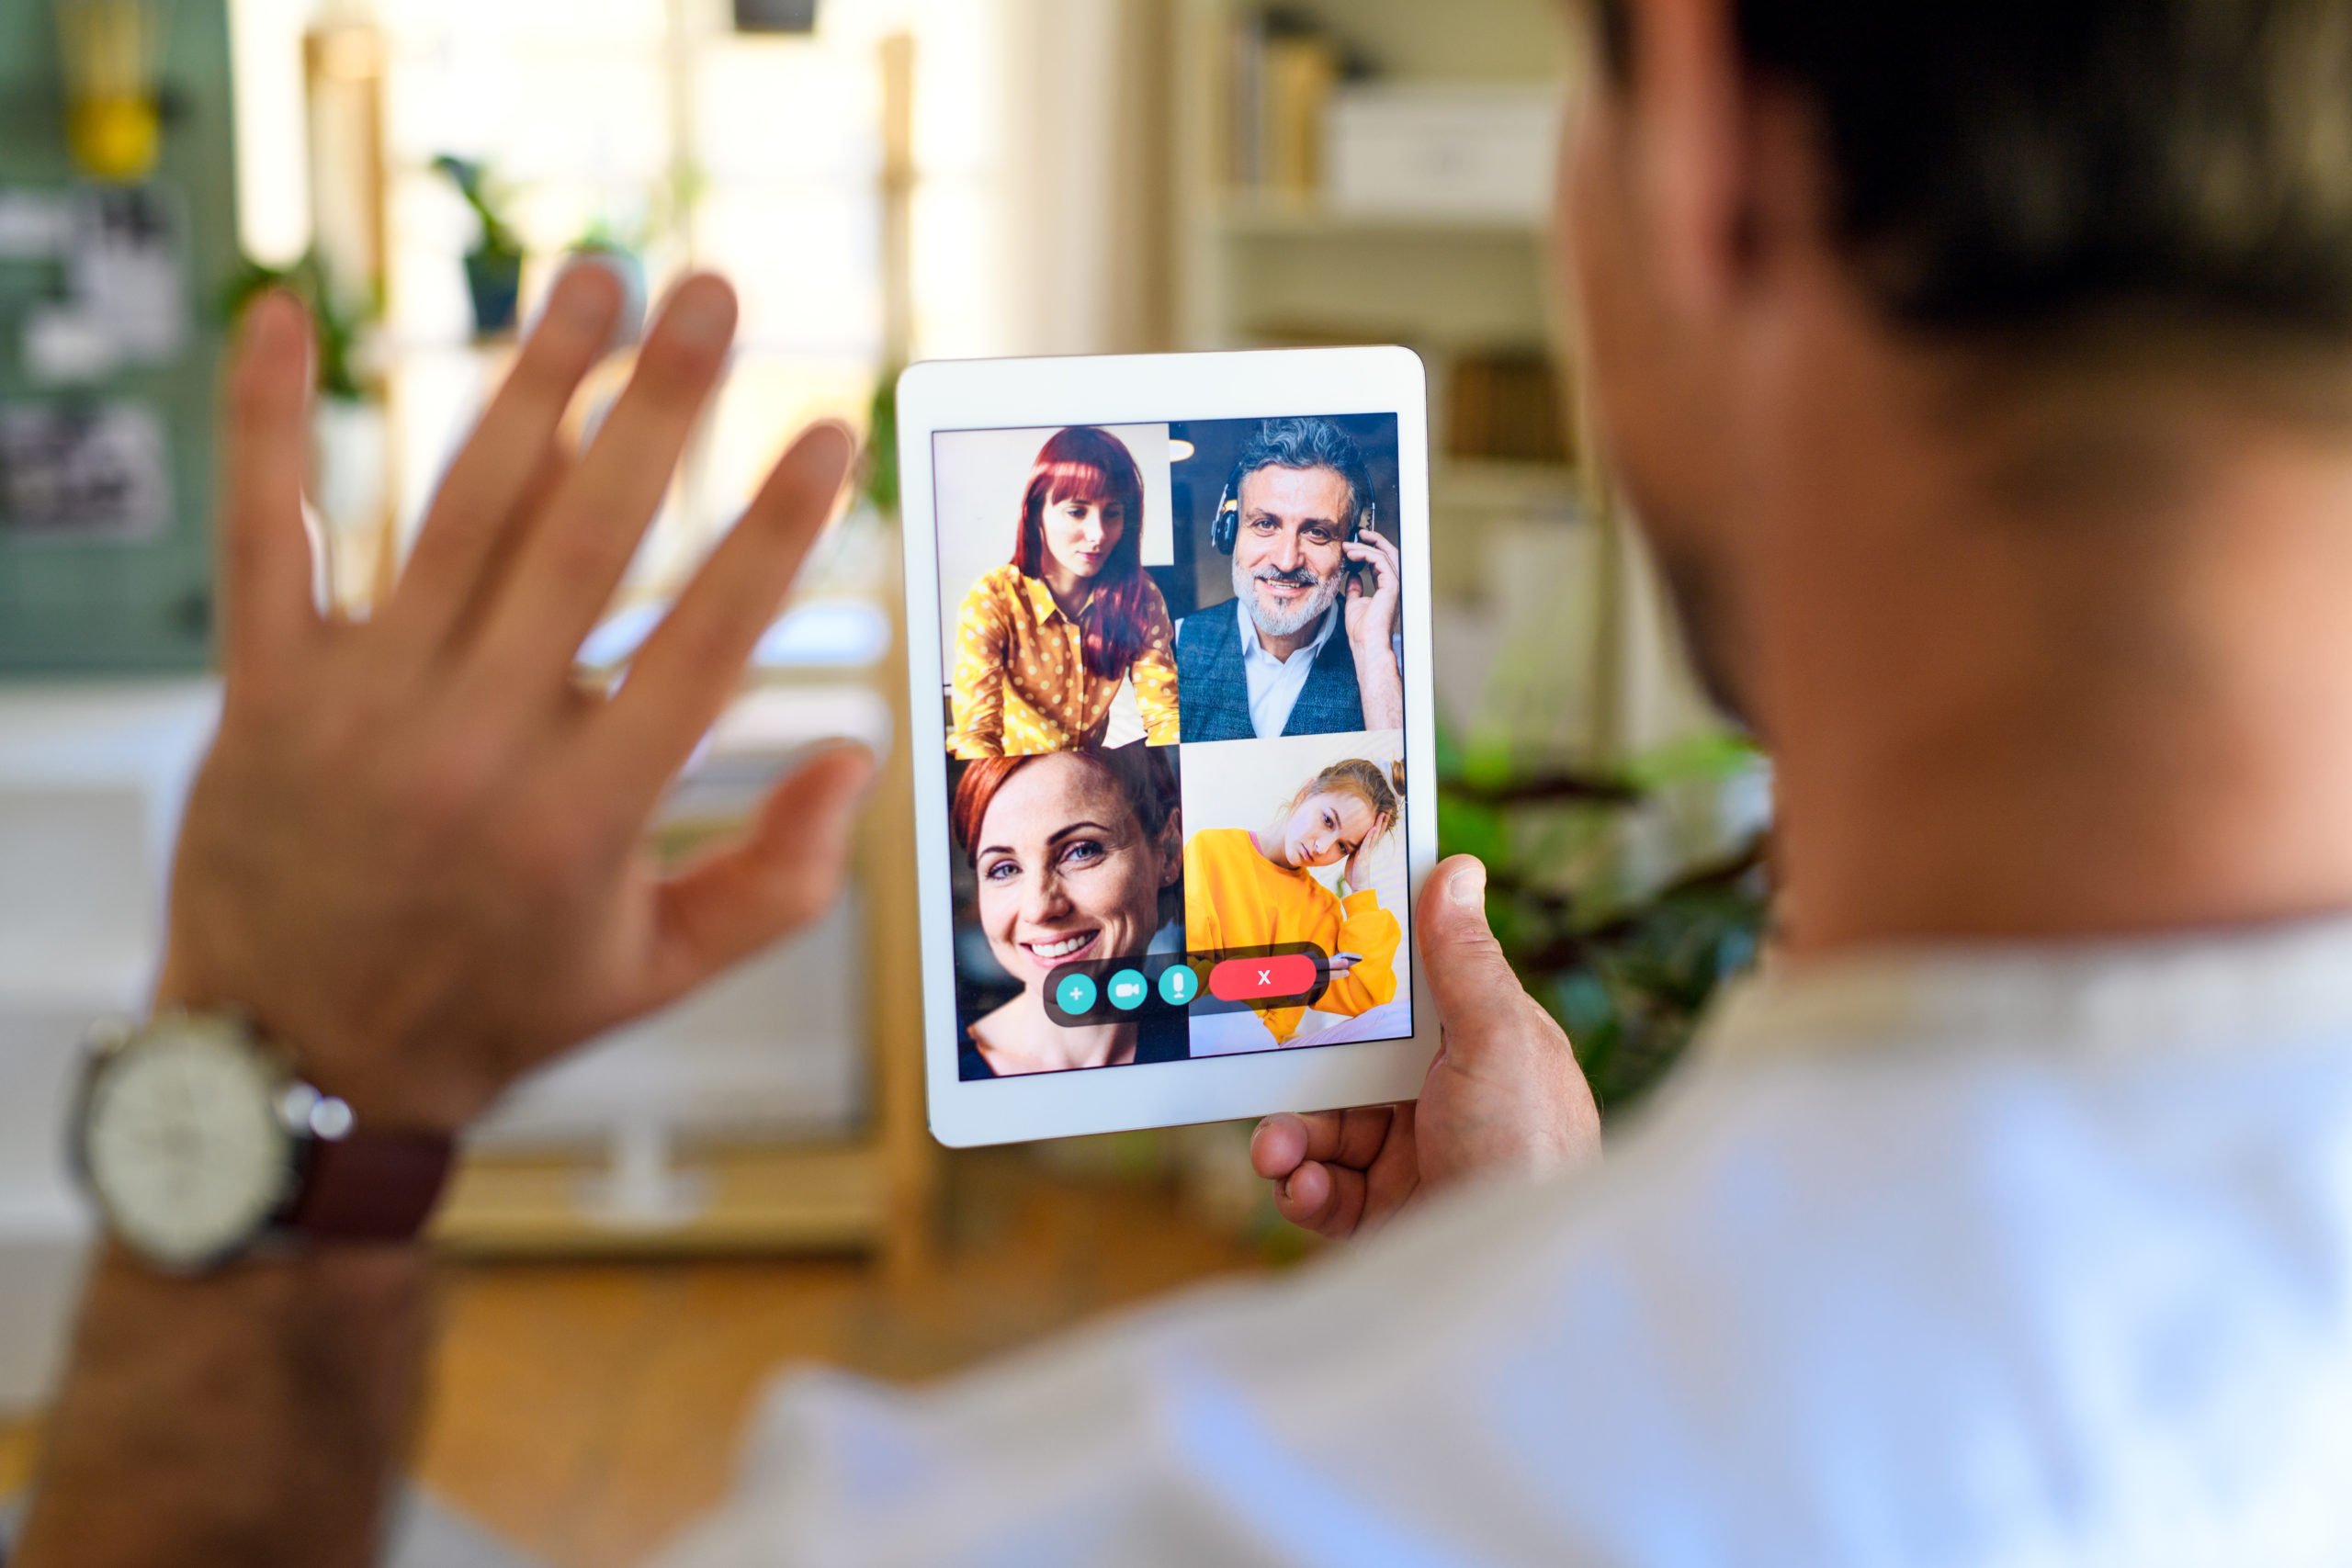 Airtime or Facetime App - What's the difference between the two?-https://elements.envato.com/rear-view-of-unrecognizable-man-having-video-call--22YYBCX